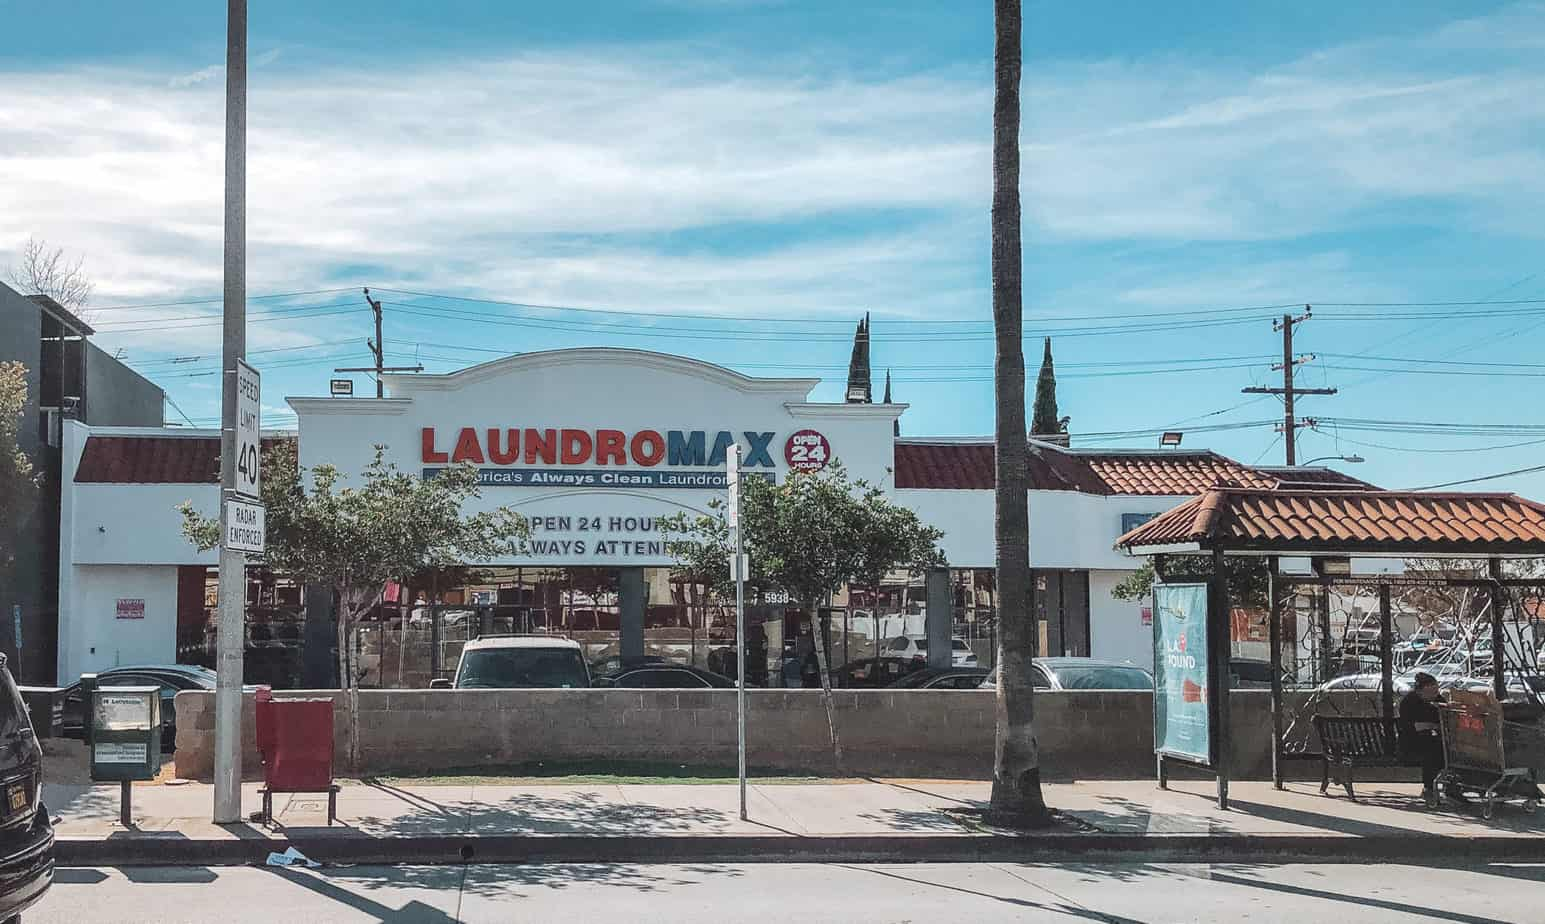 How To Do Laundromat Due Diligence [Infographic]